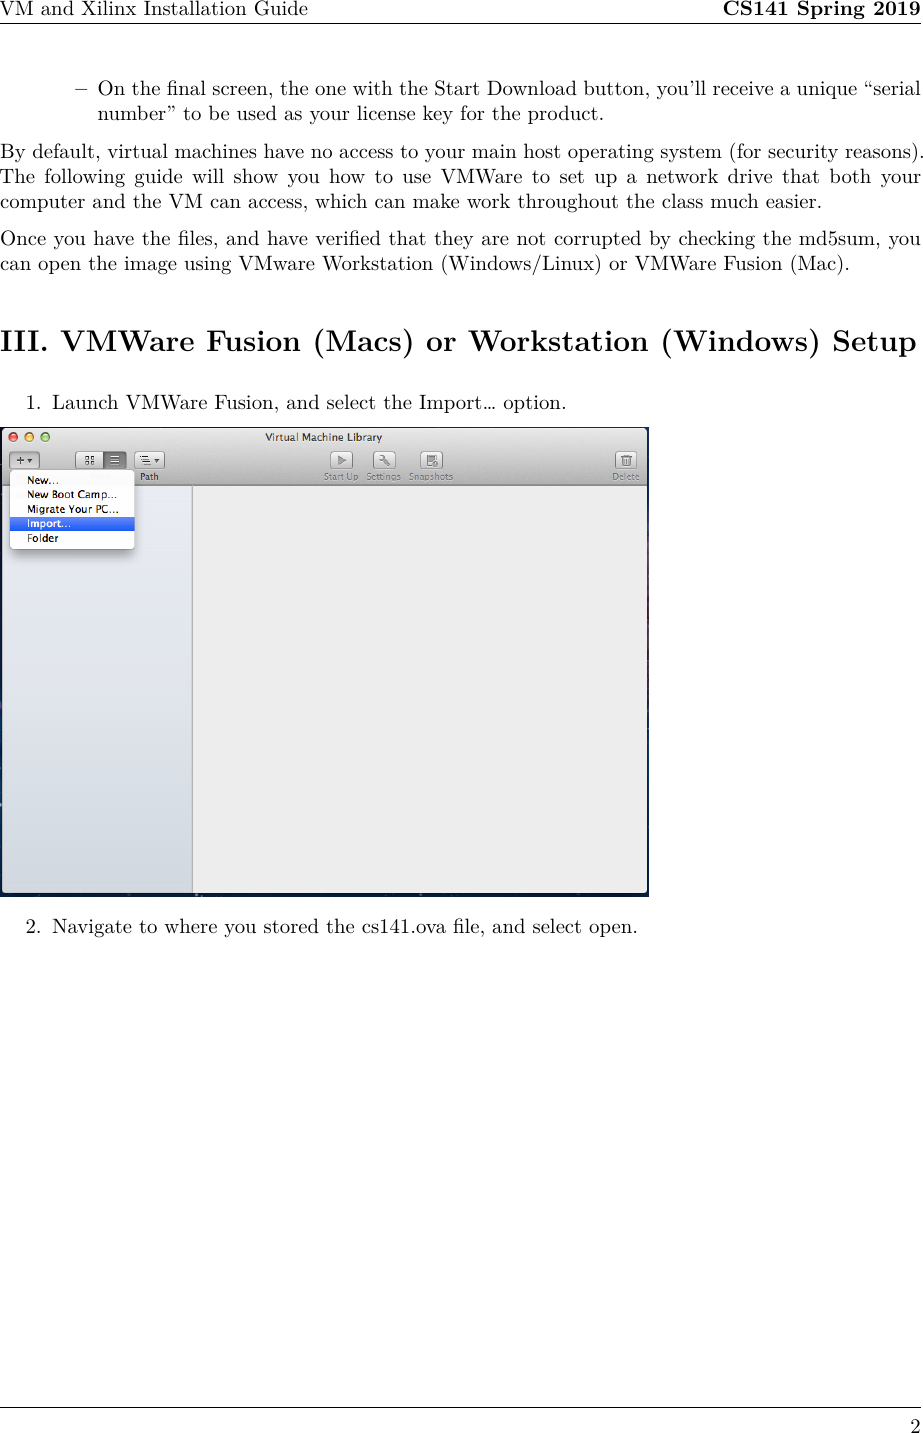 VM And Xilinx Installation Guide